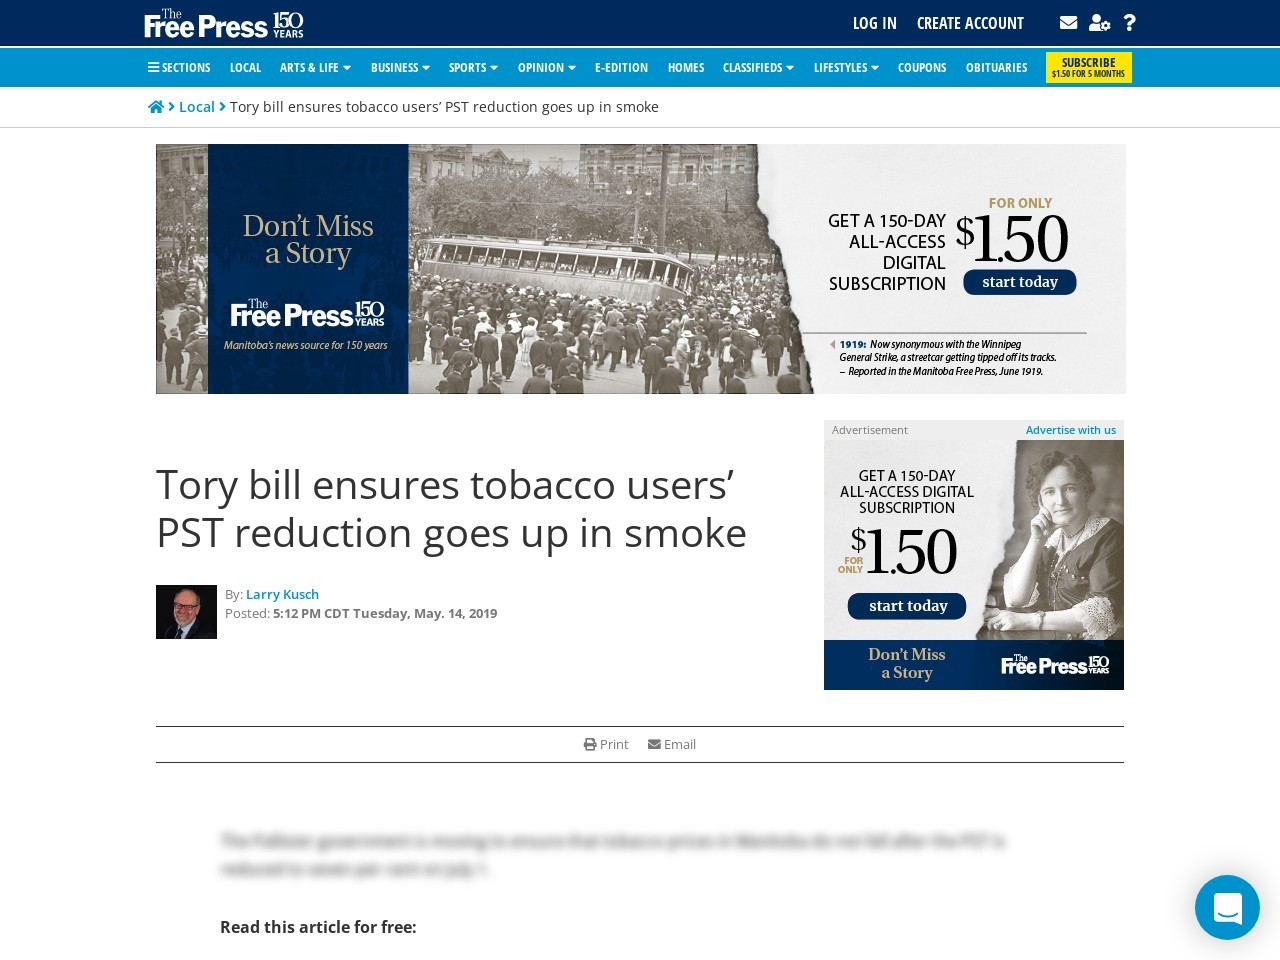 Tory bill ensures tobacco users' PST reduction goes up in smoke